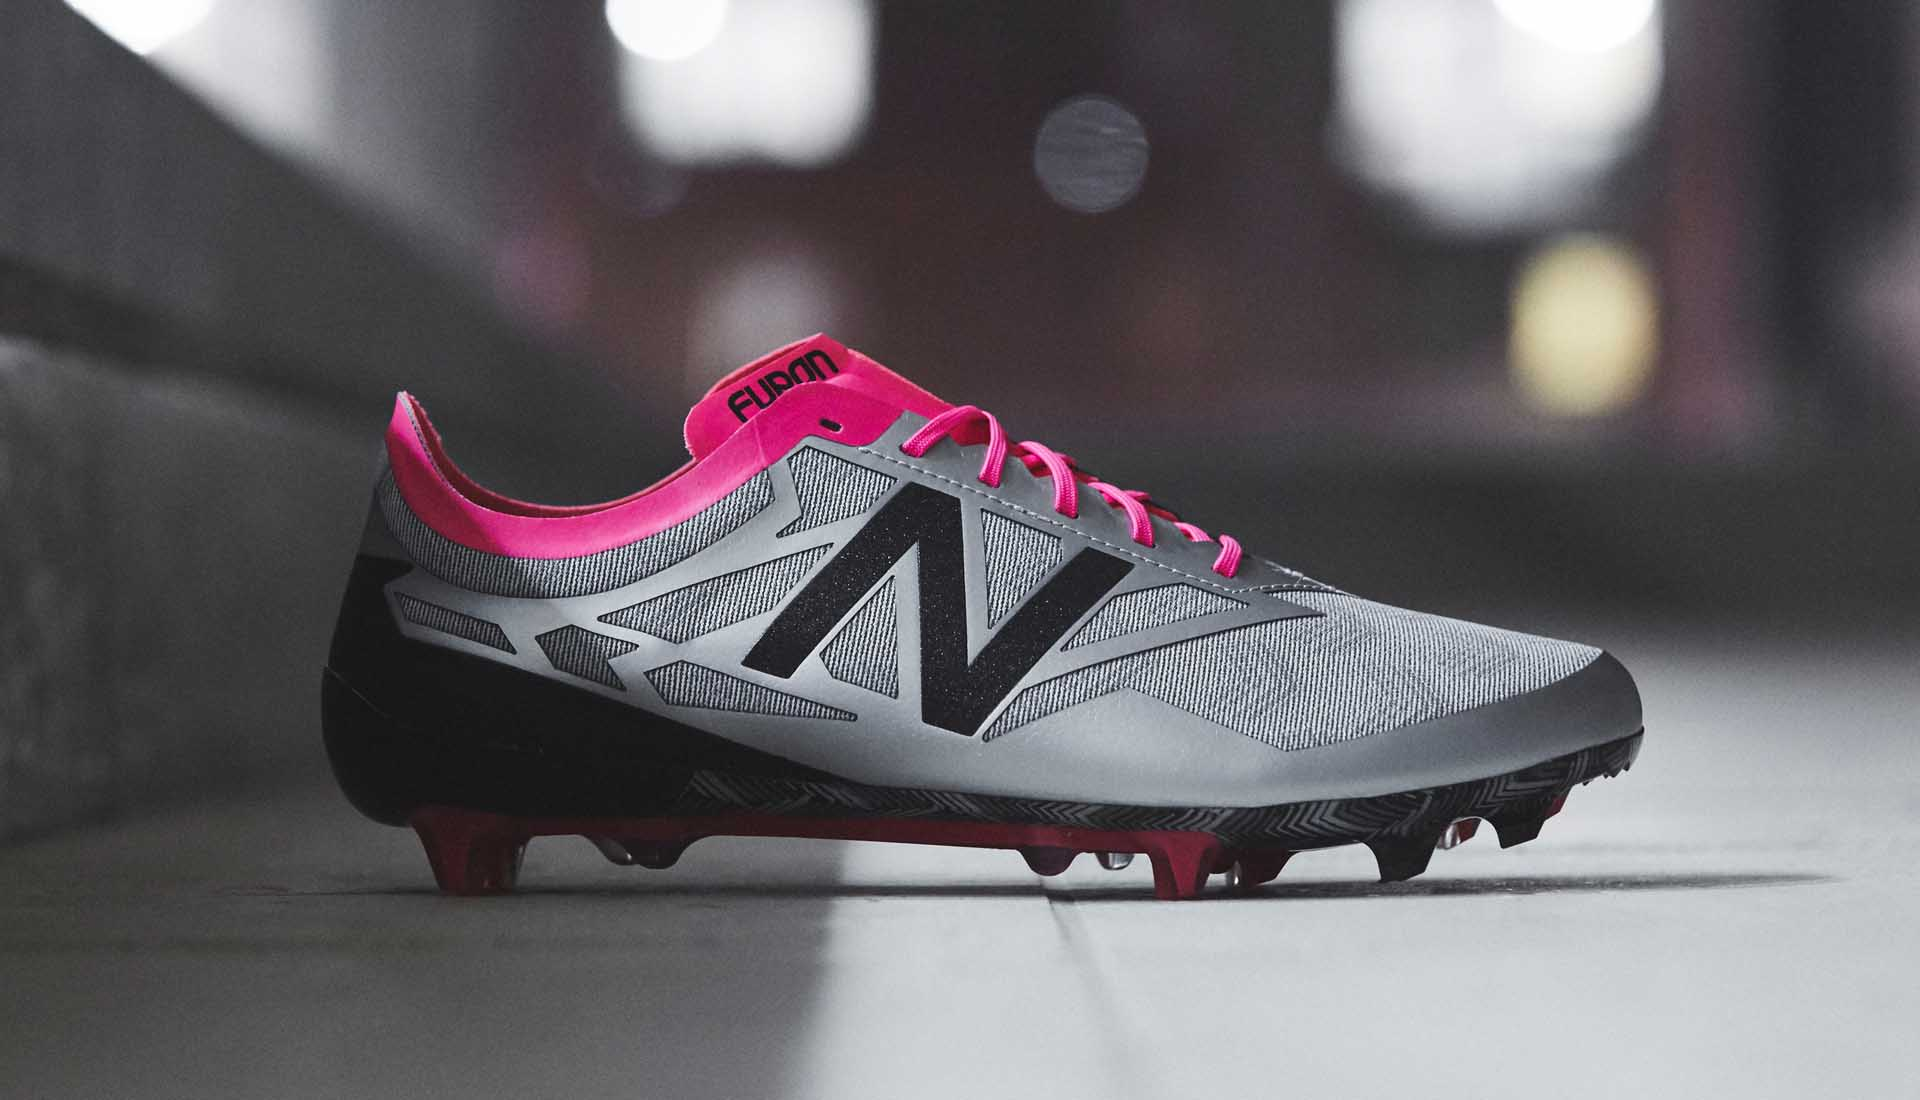 94206a784 New Balance Limited Edition Furon Flare 3.0 Football Boots - SoccerBible